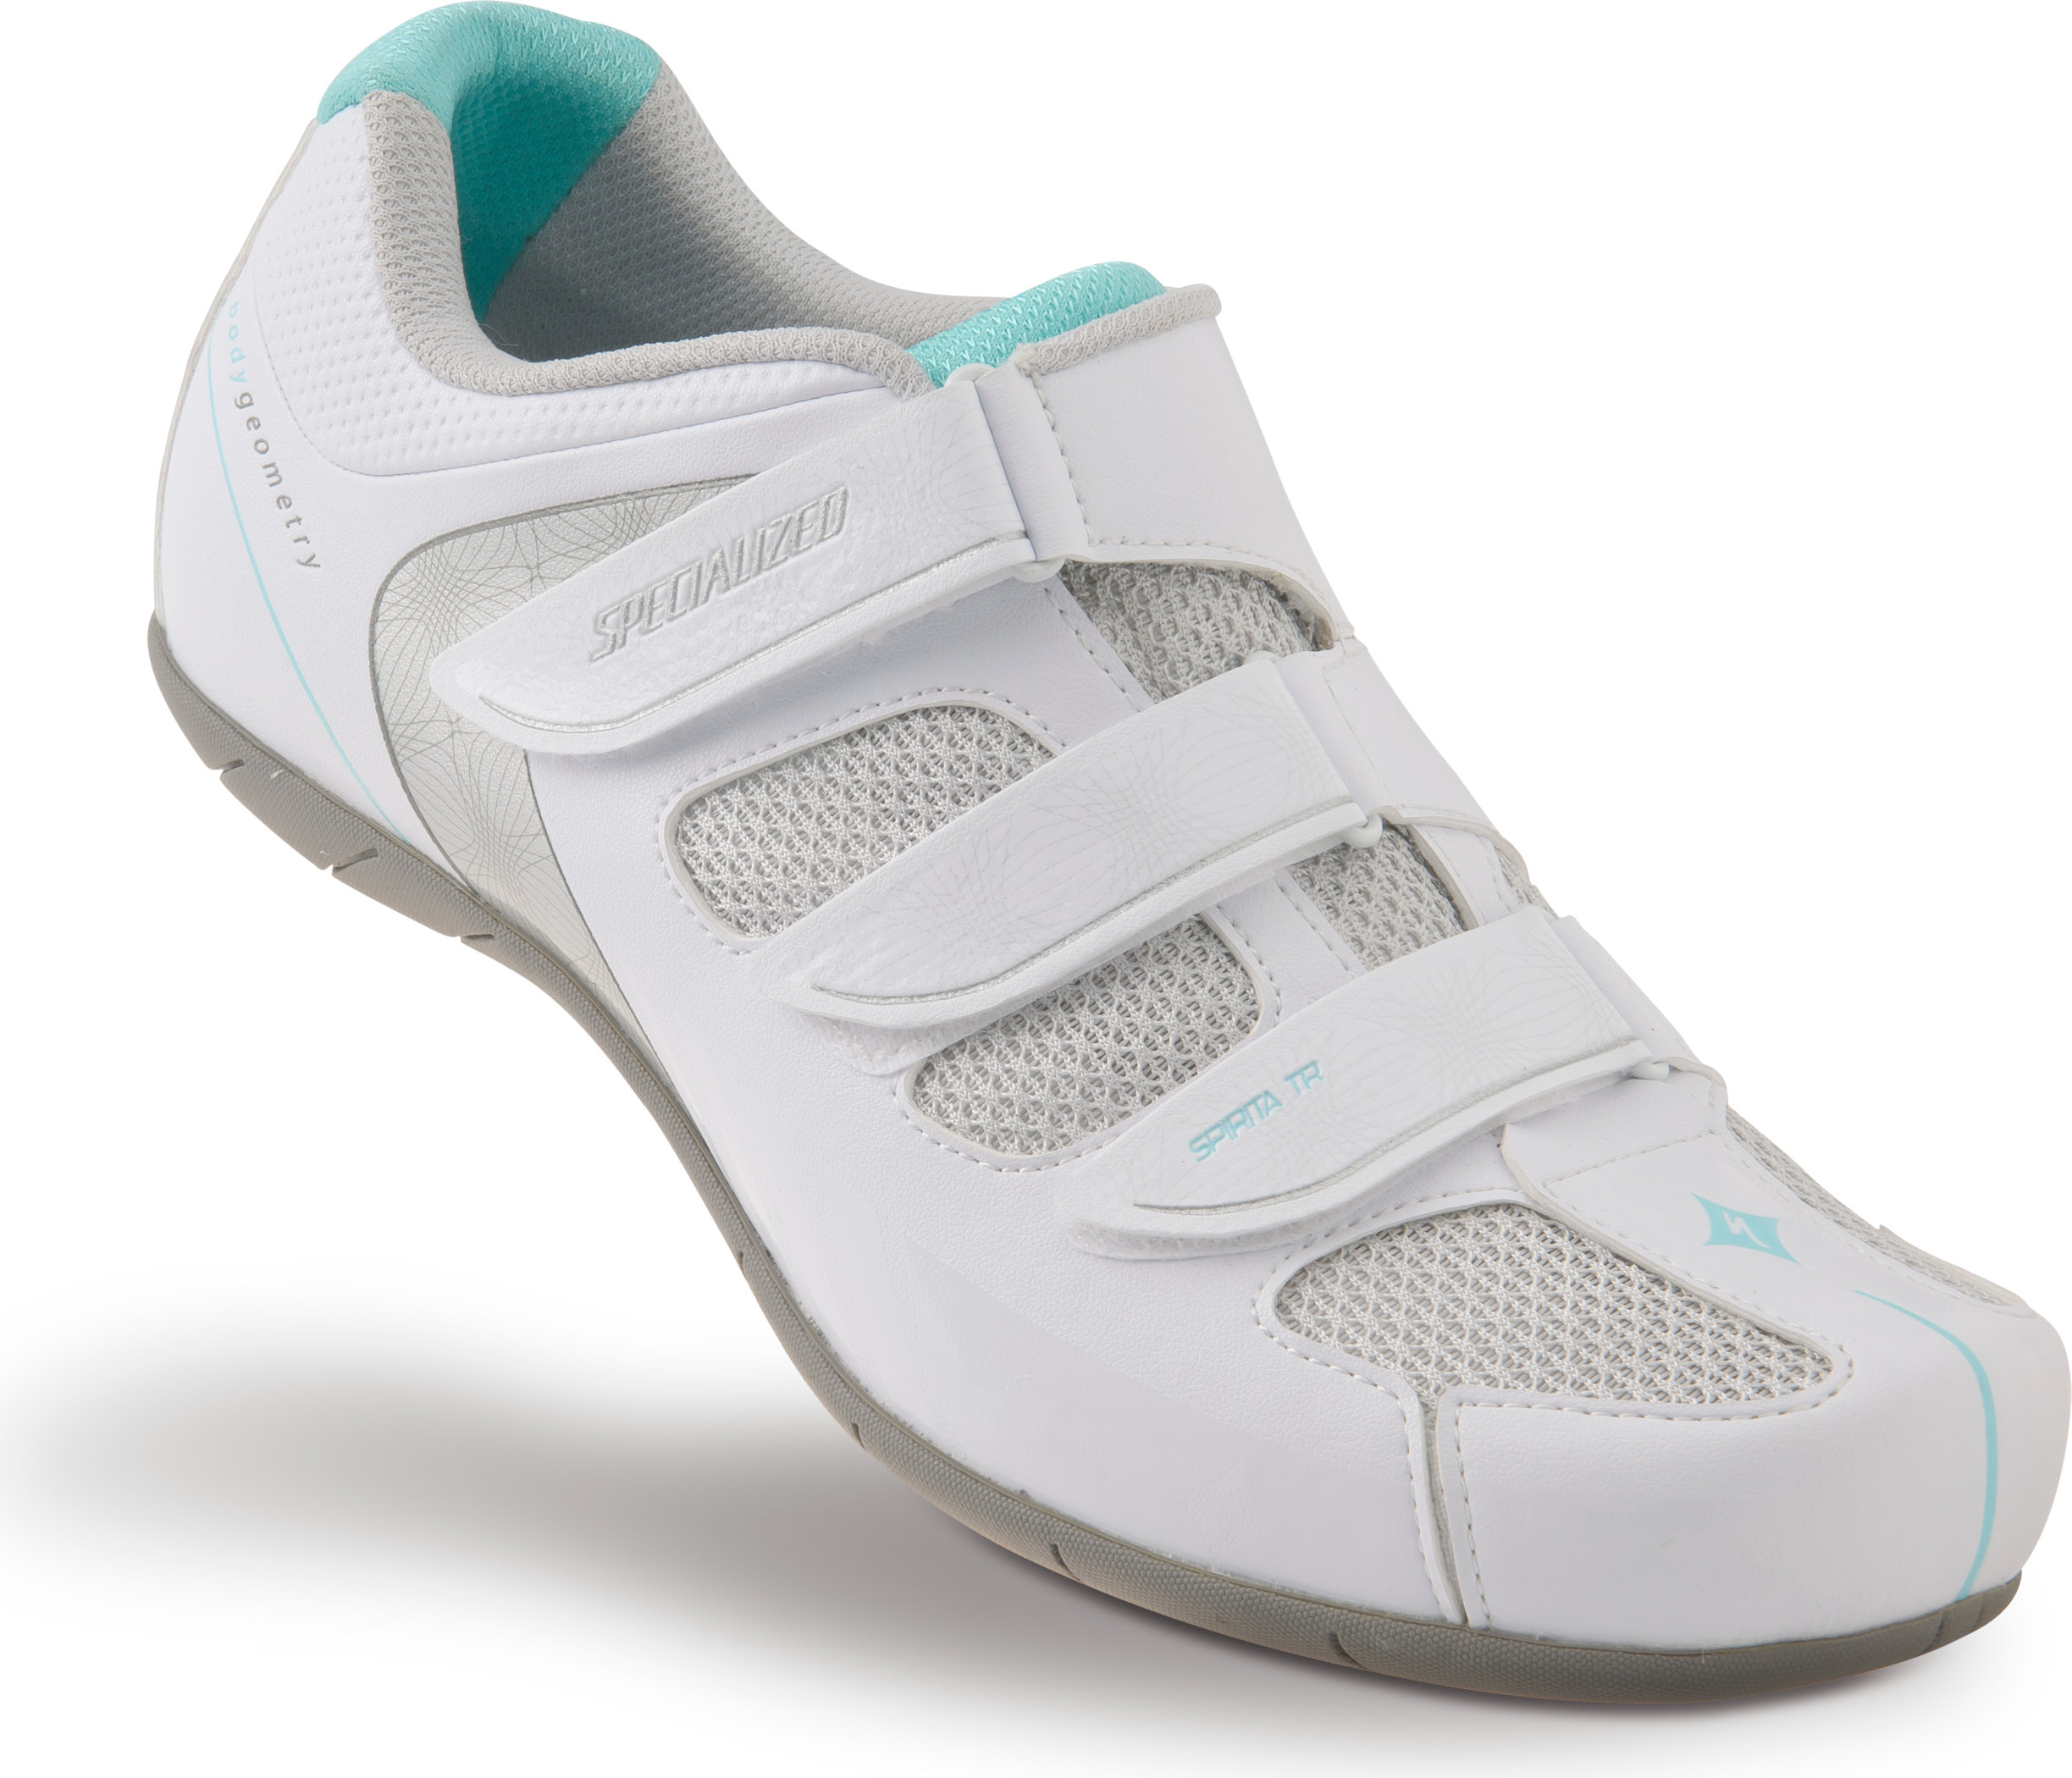 SPECIALIZED SPIRITA RBX SHOE WMN WHT/TEAL 36/5.75 - Bikedreams & Dustbikes